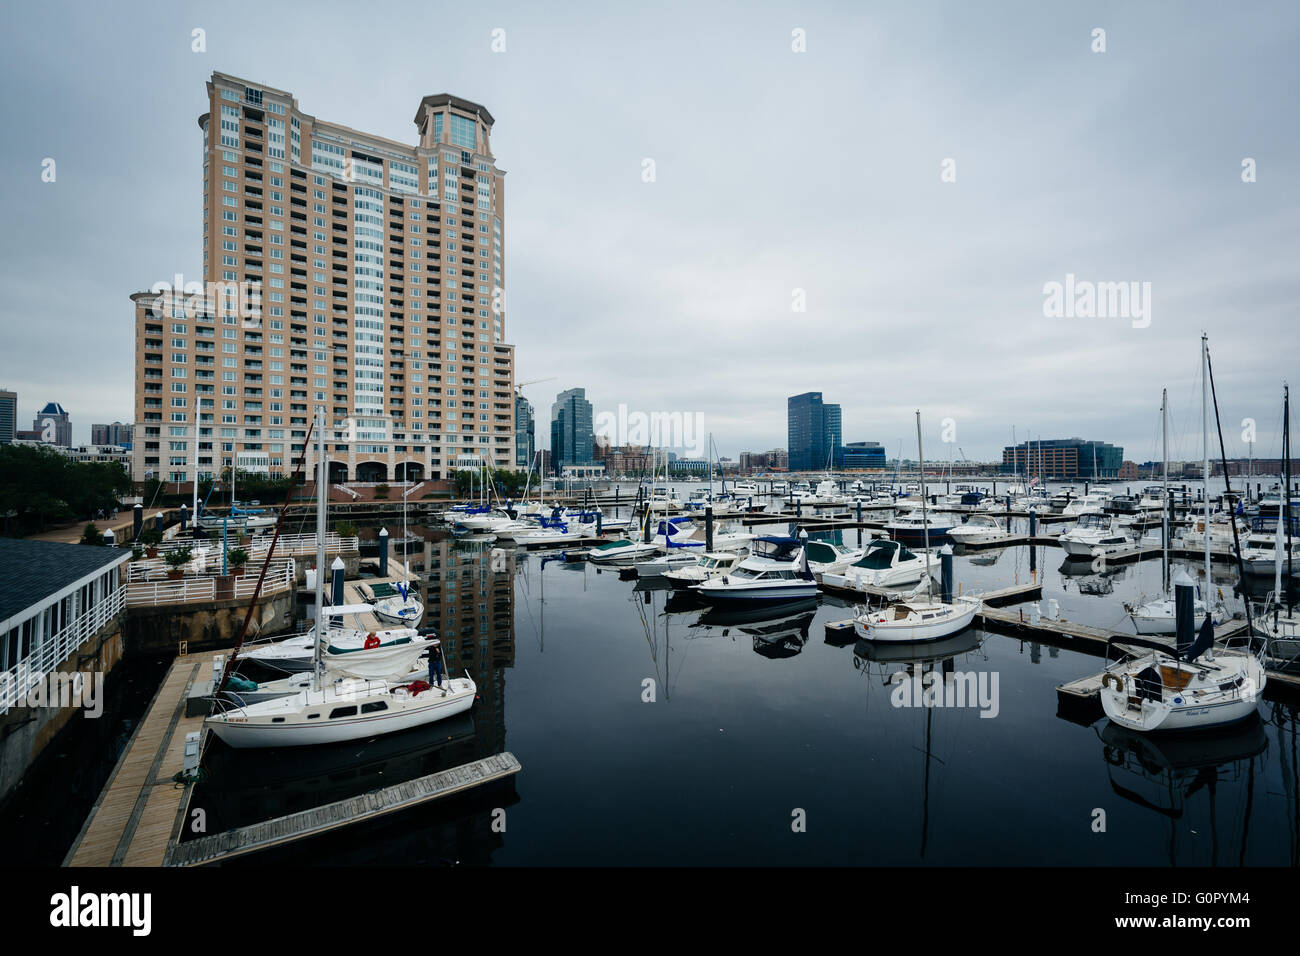 Perfect Highrise Apartment Building And Marina At The Inner Harbor, In Baltimore,  Maryland.